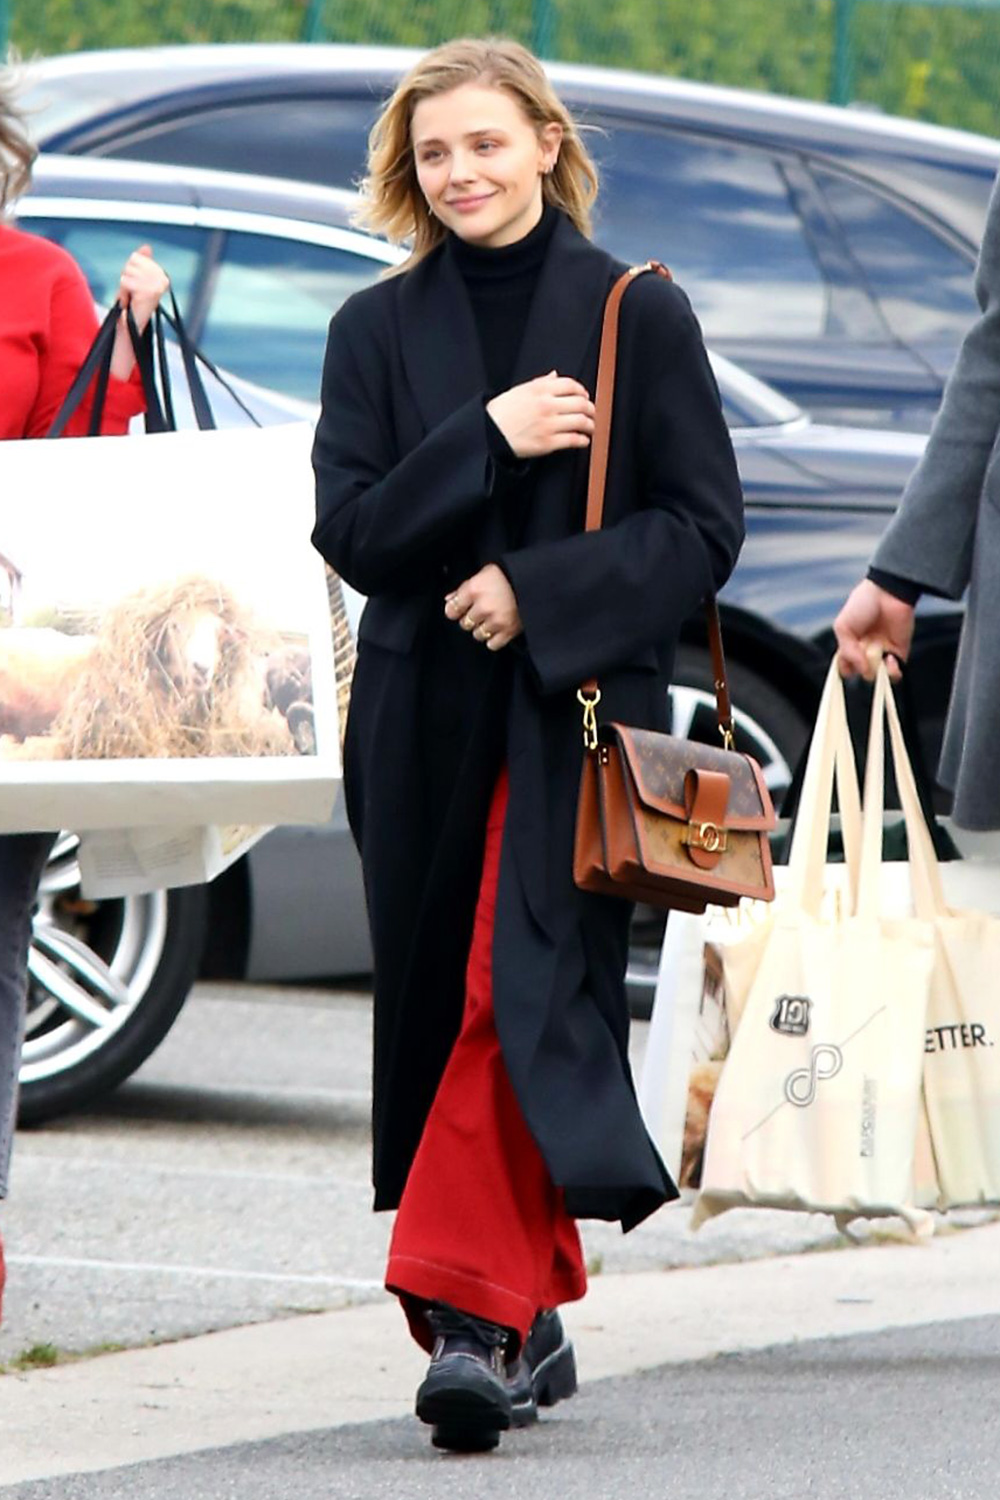 Chloe Moretz seen wearing red pants and black over coat with brother after shopping spree. 16 Jan 2020